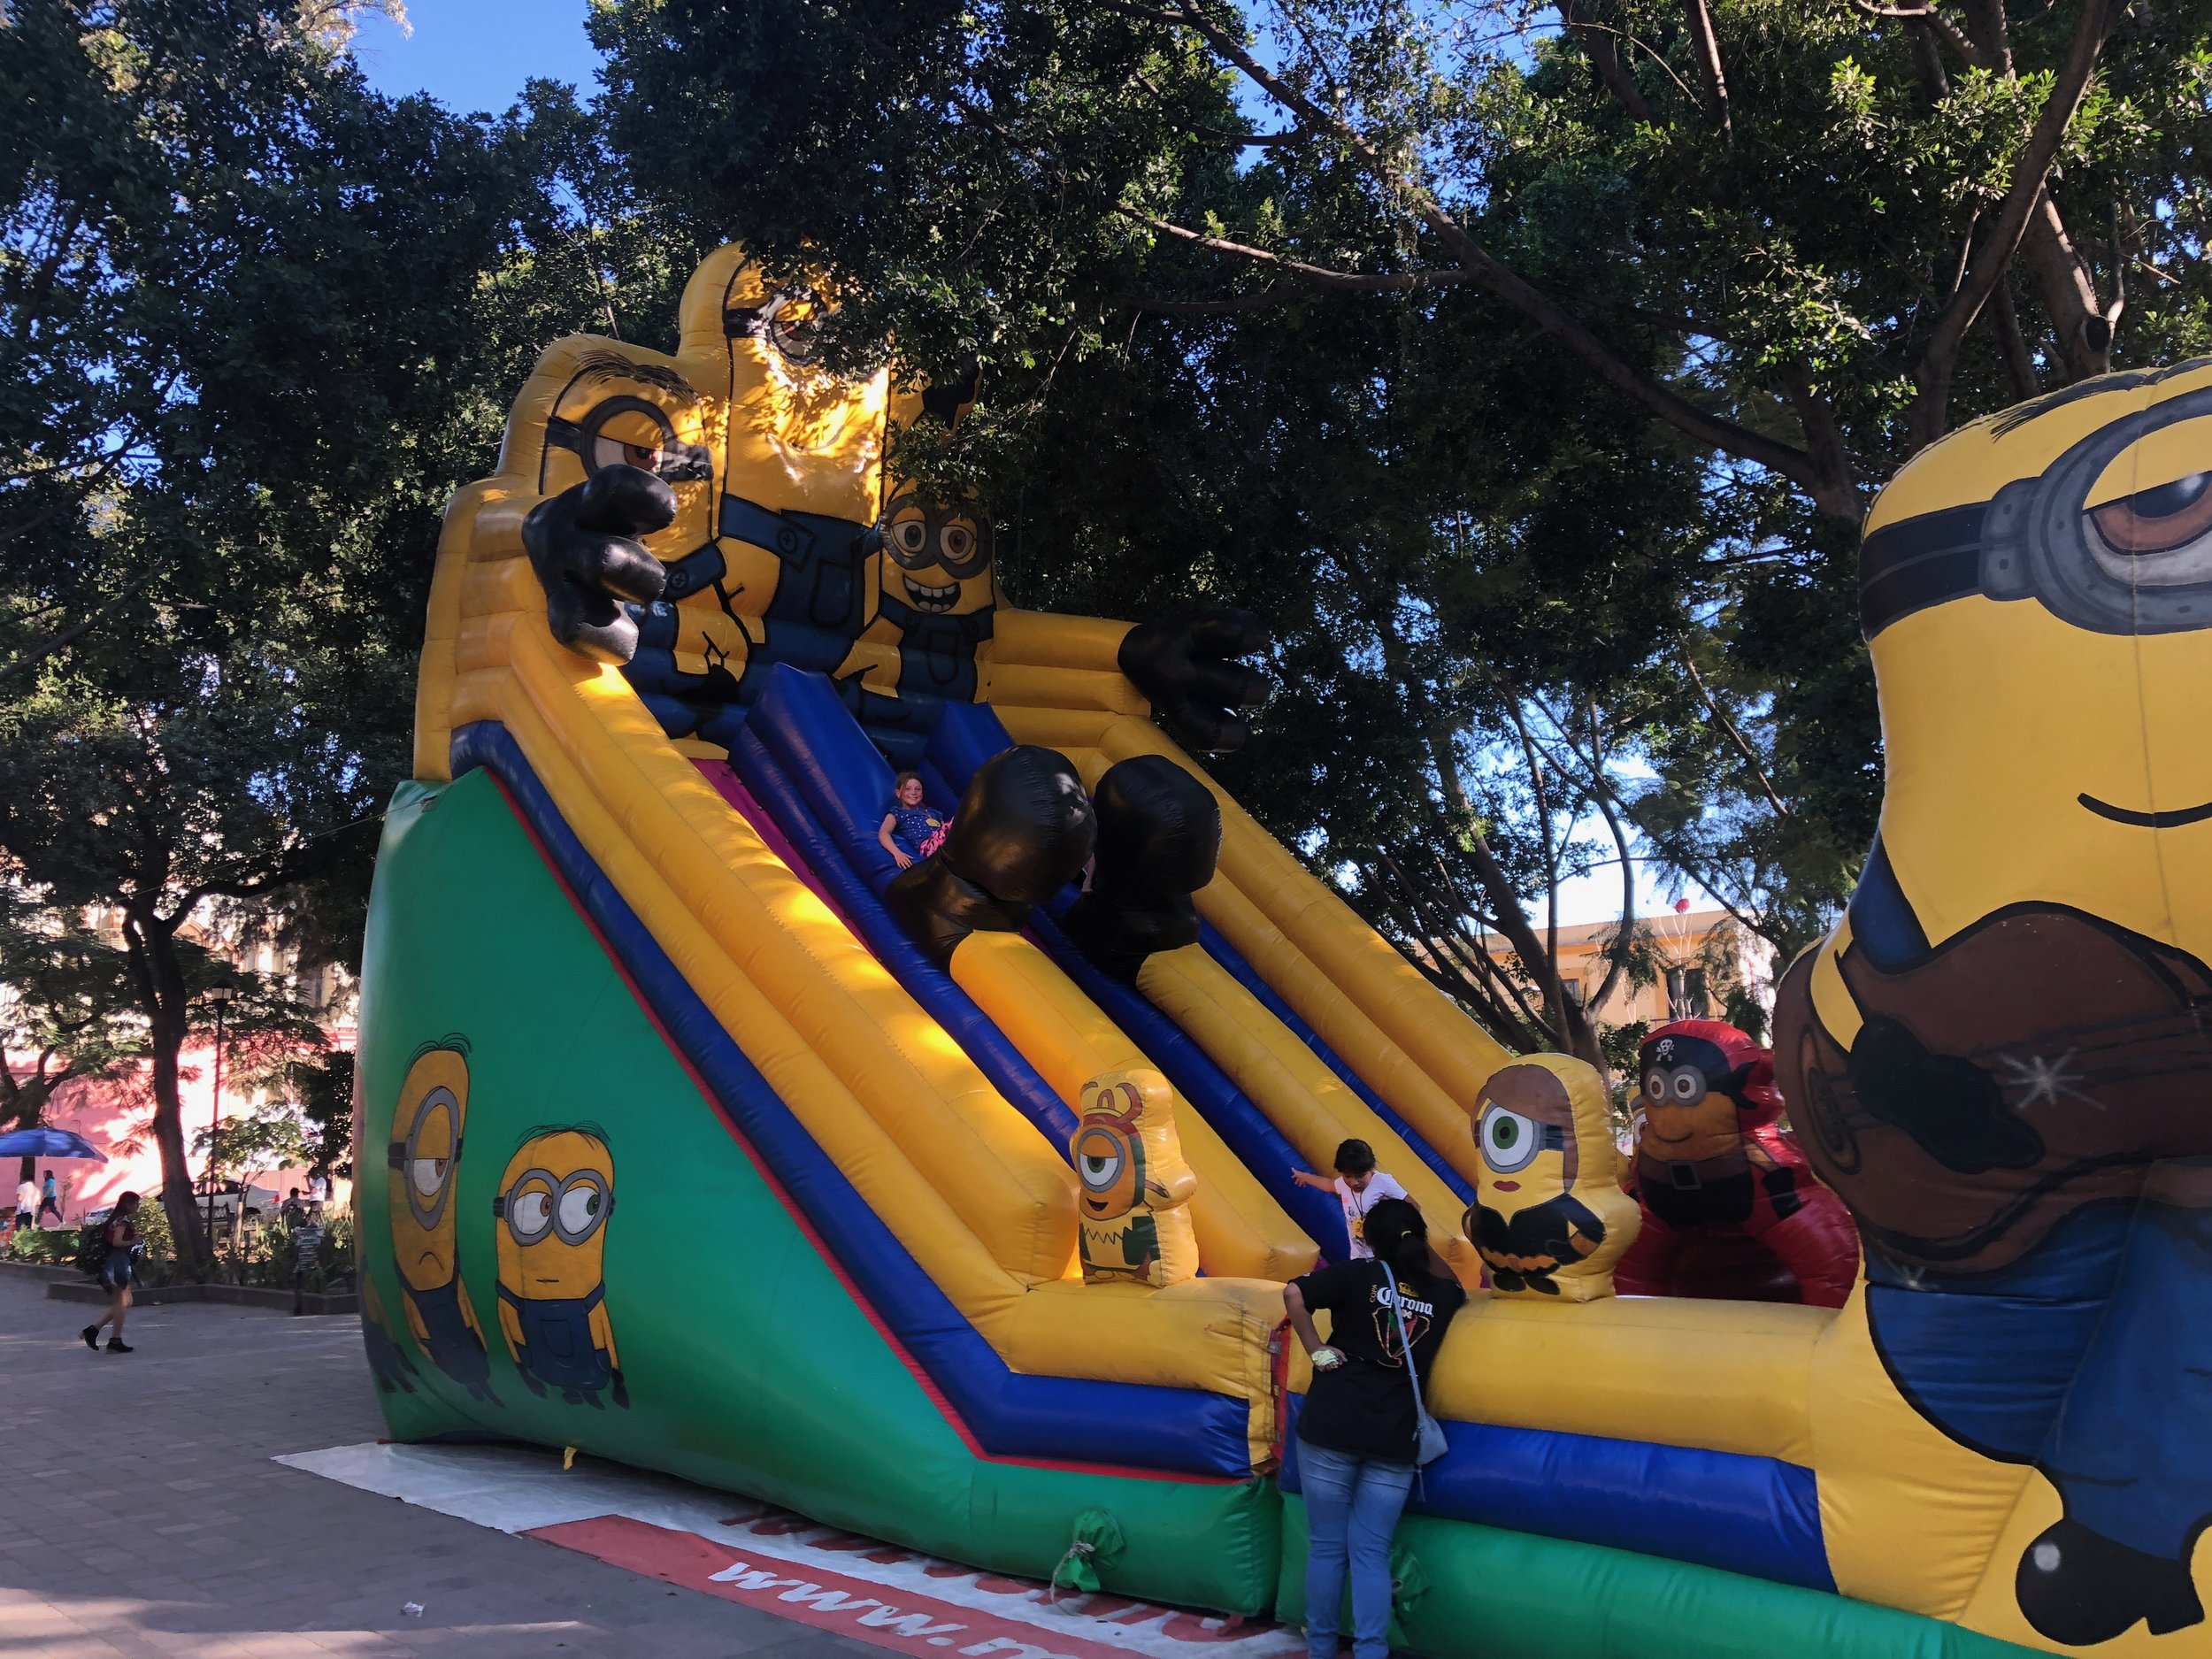 """This bouncy blow up """"thing"""" is always up and running at Llano Park in the Centro. The girls love it and play on it a couple times a week."""